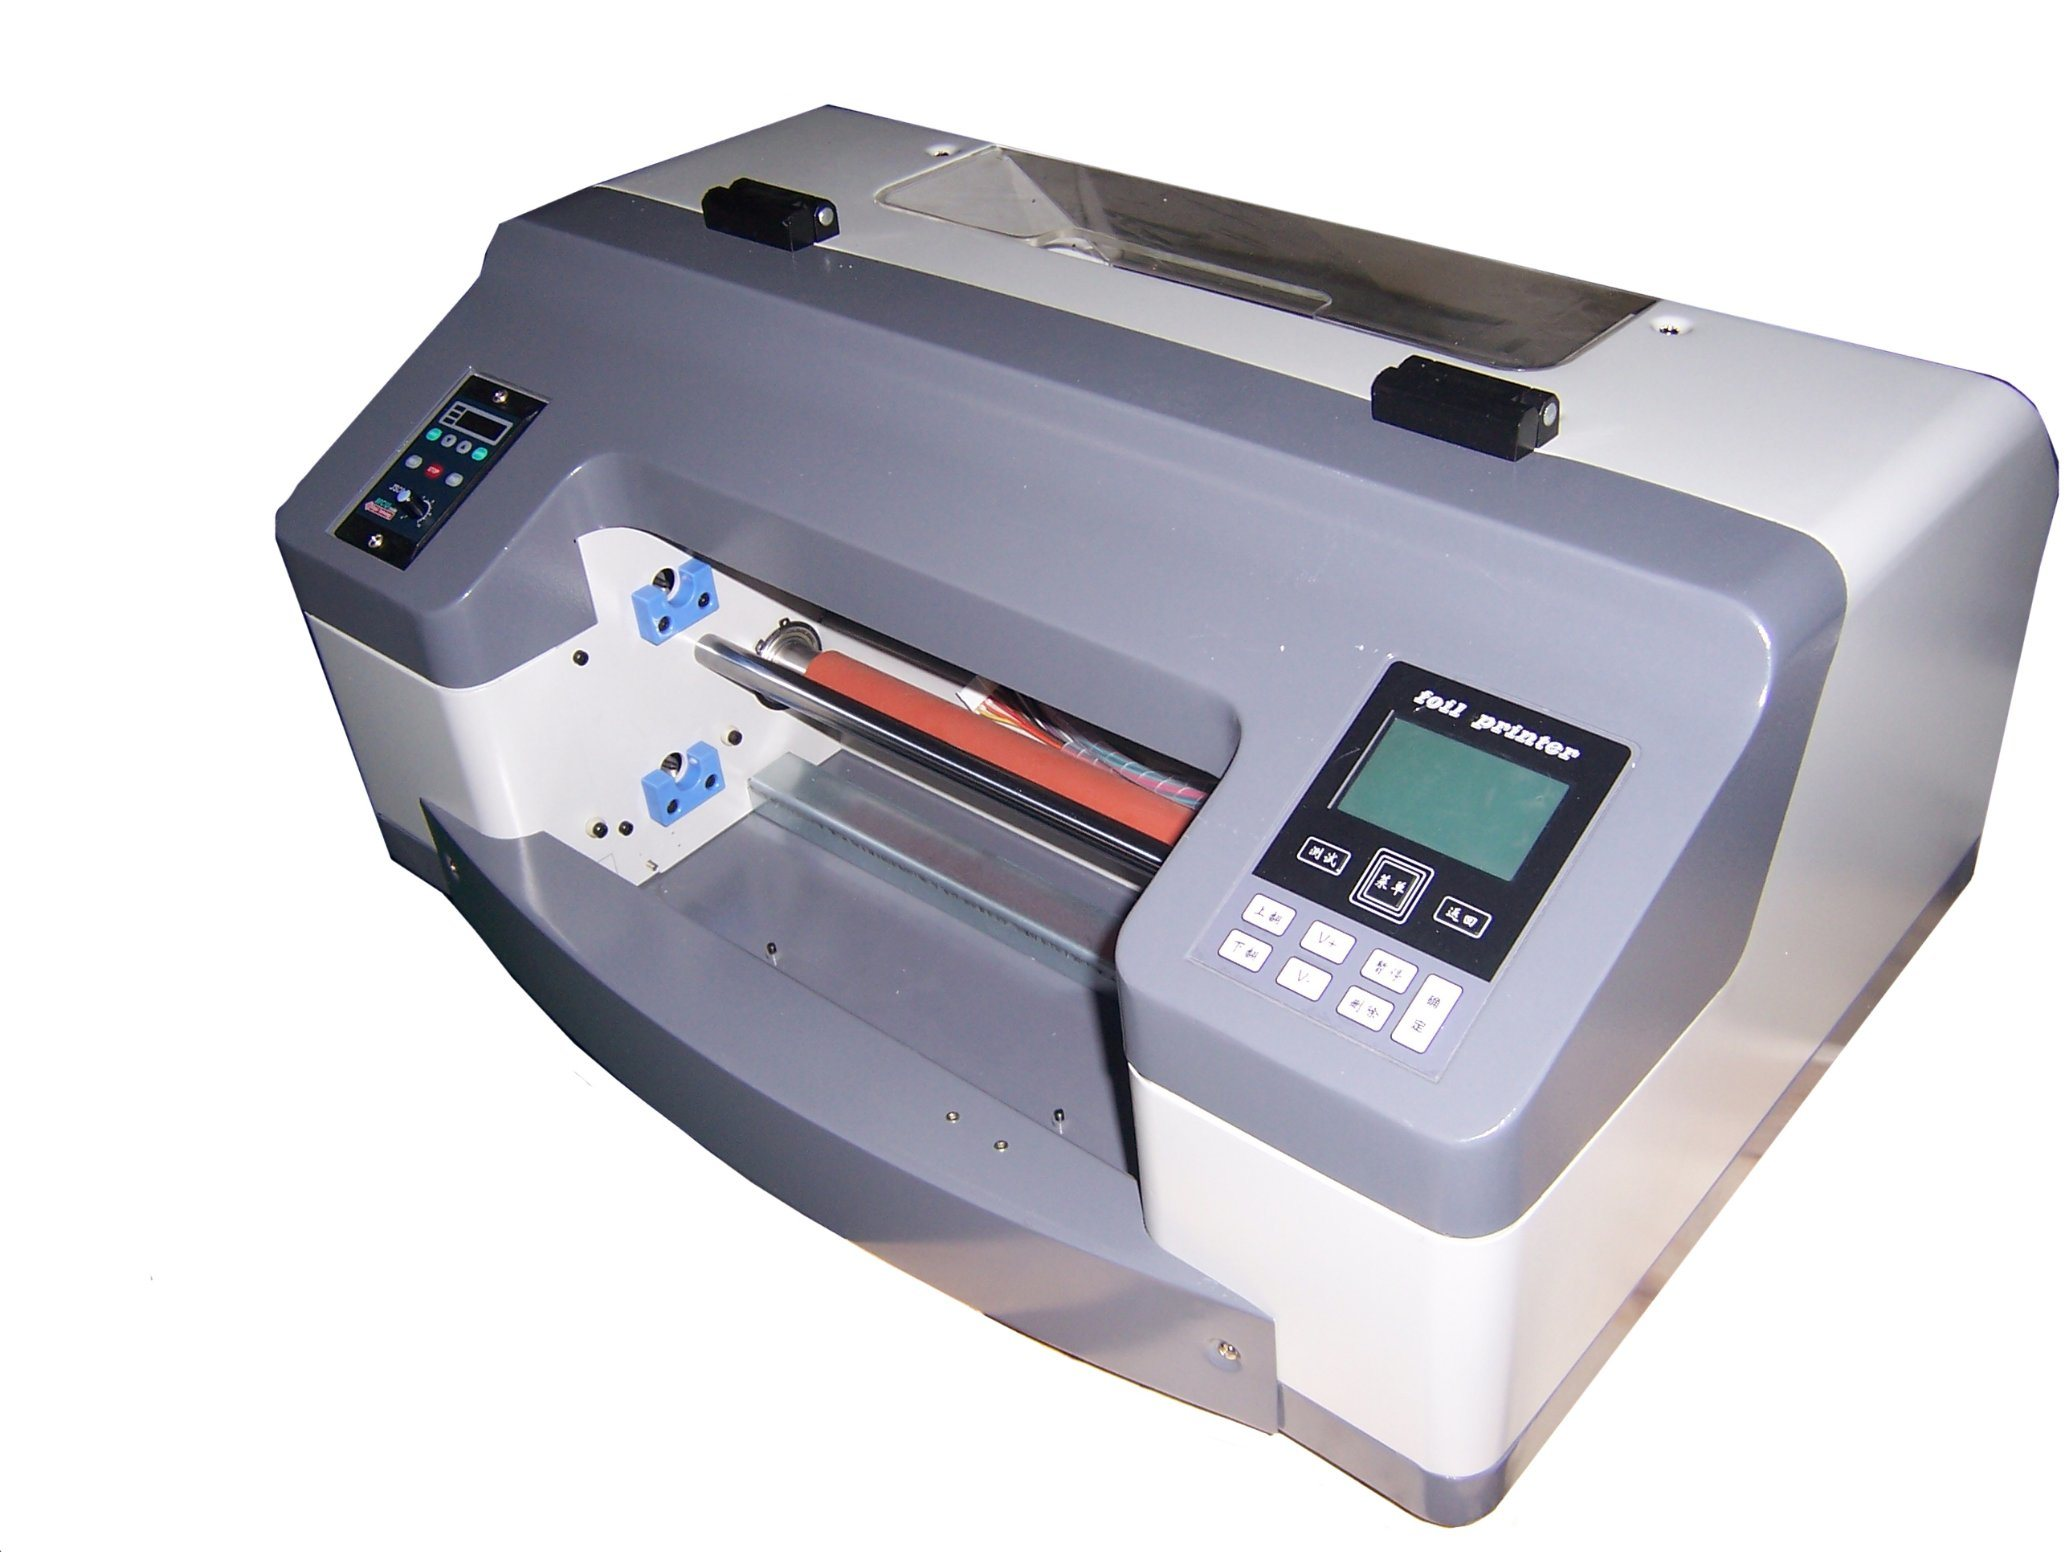 DC-300tj PRO Digital Foil Printer